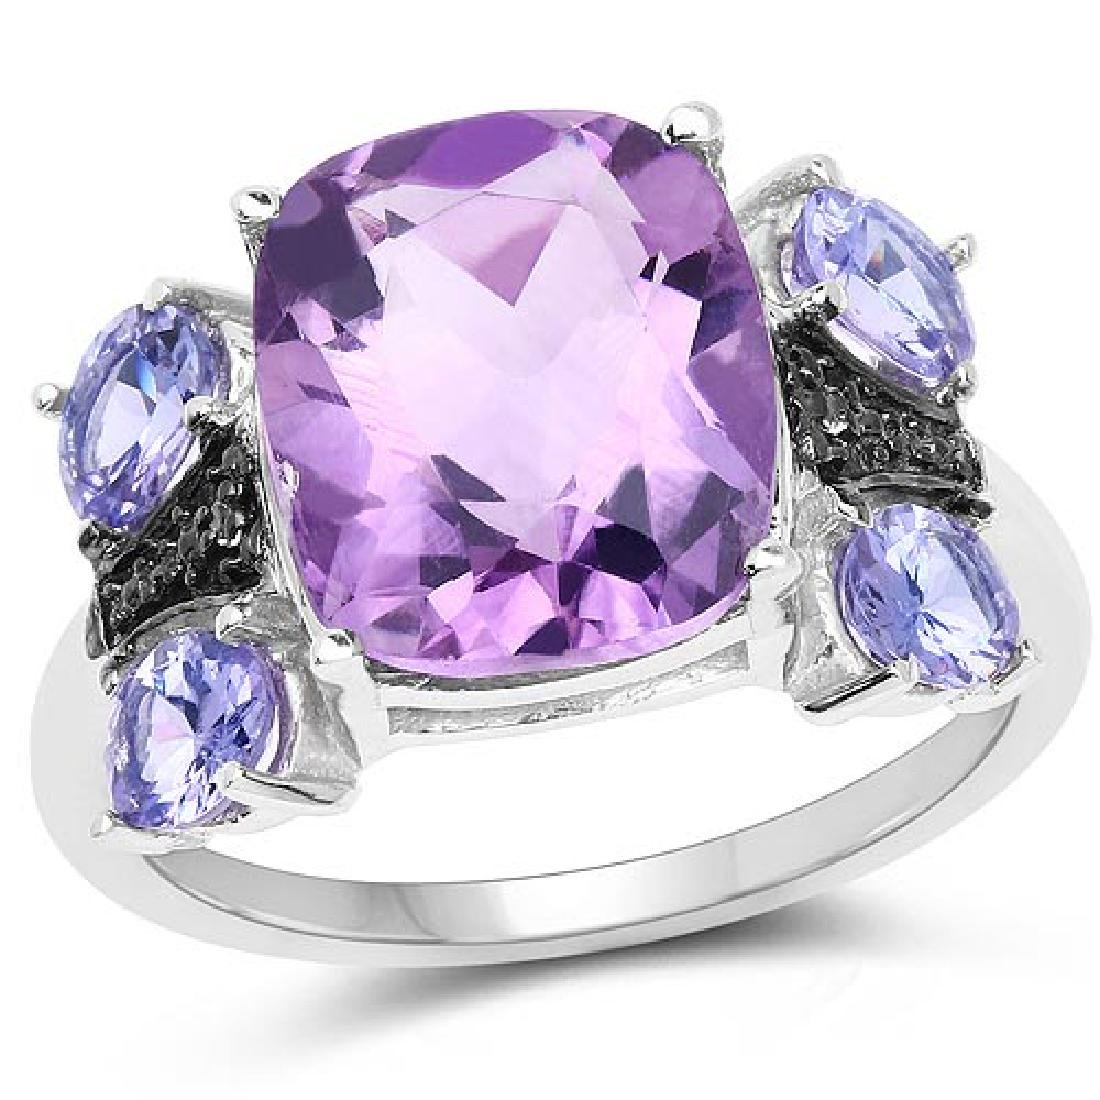 5.53 Carat Genuine Amethyst Tanzanite and White Topaz